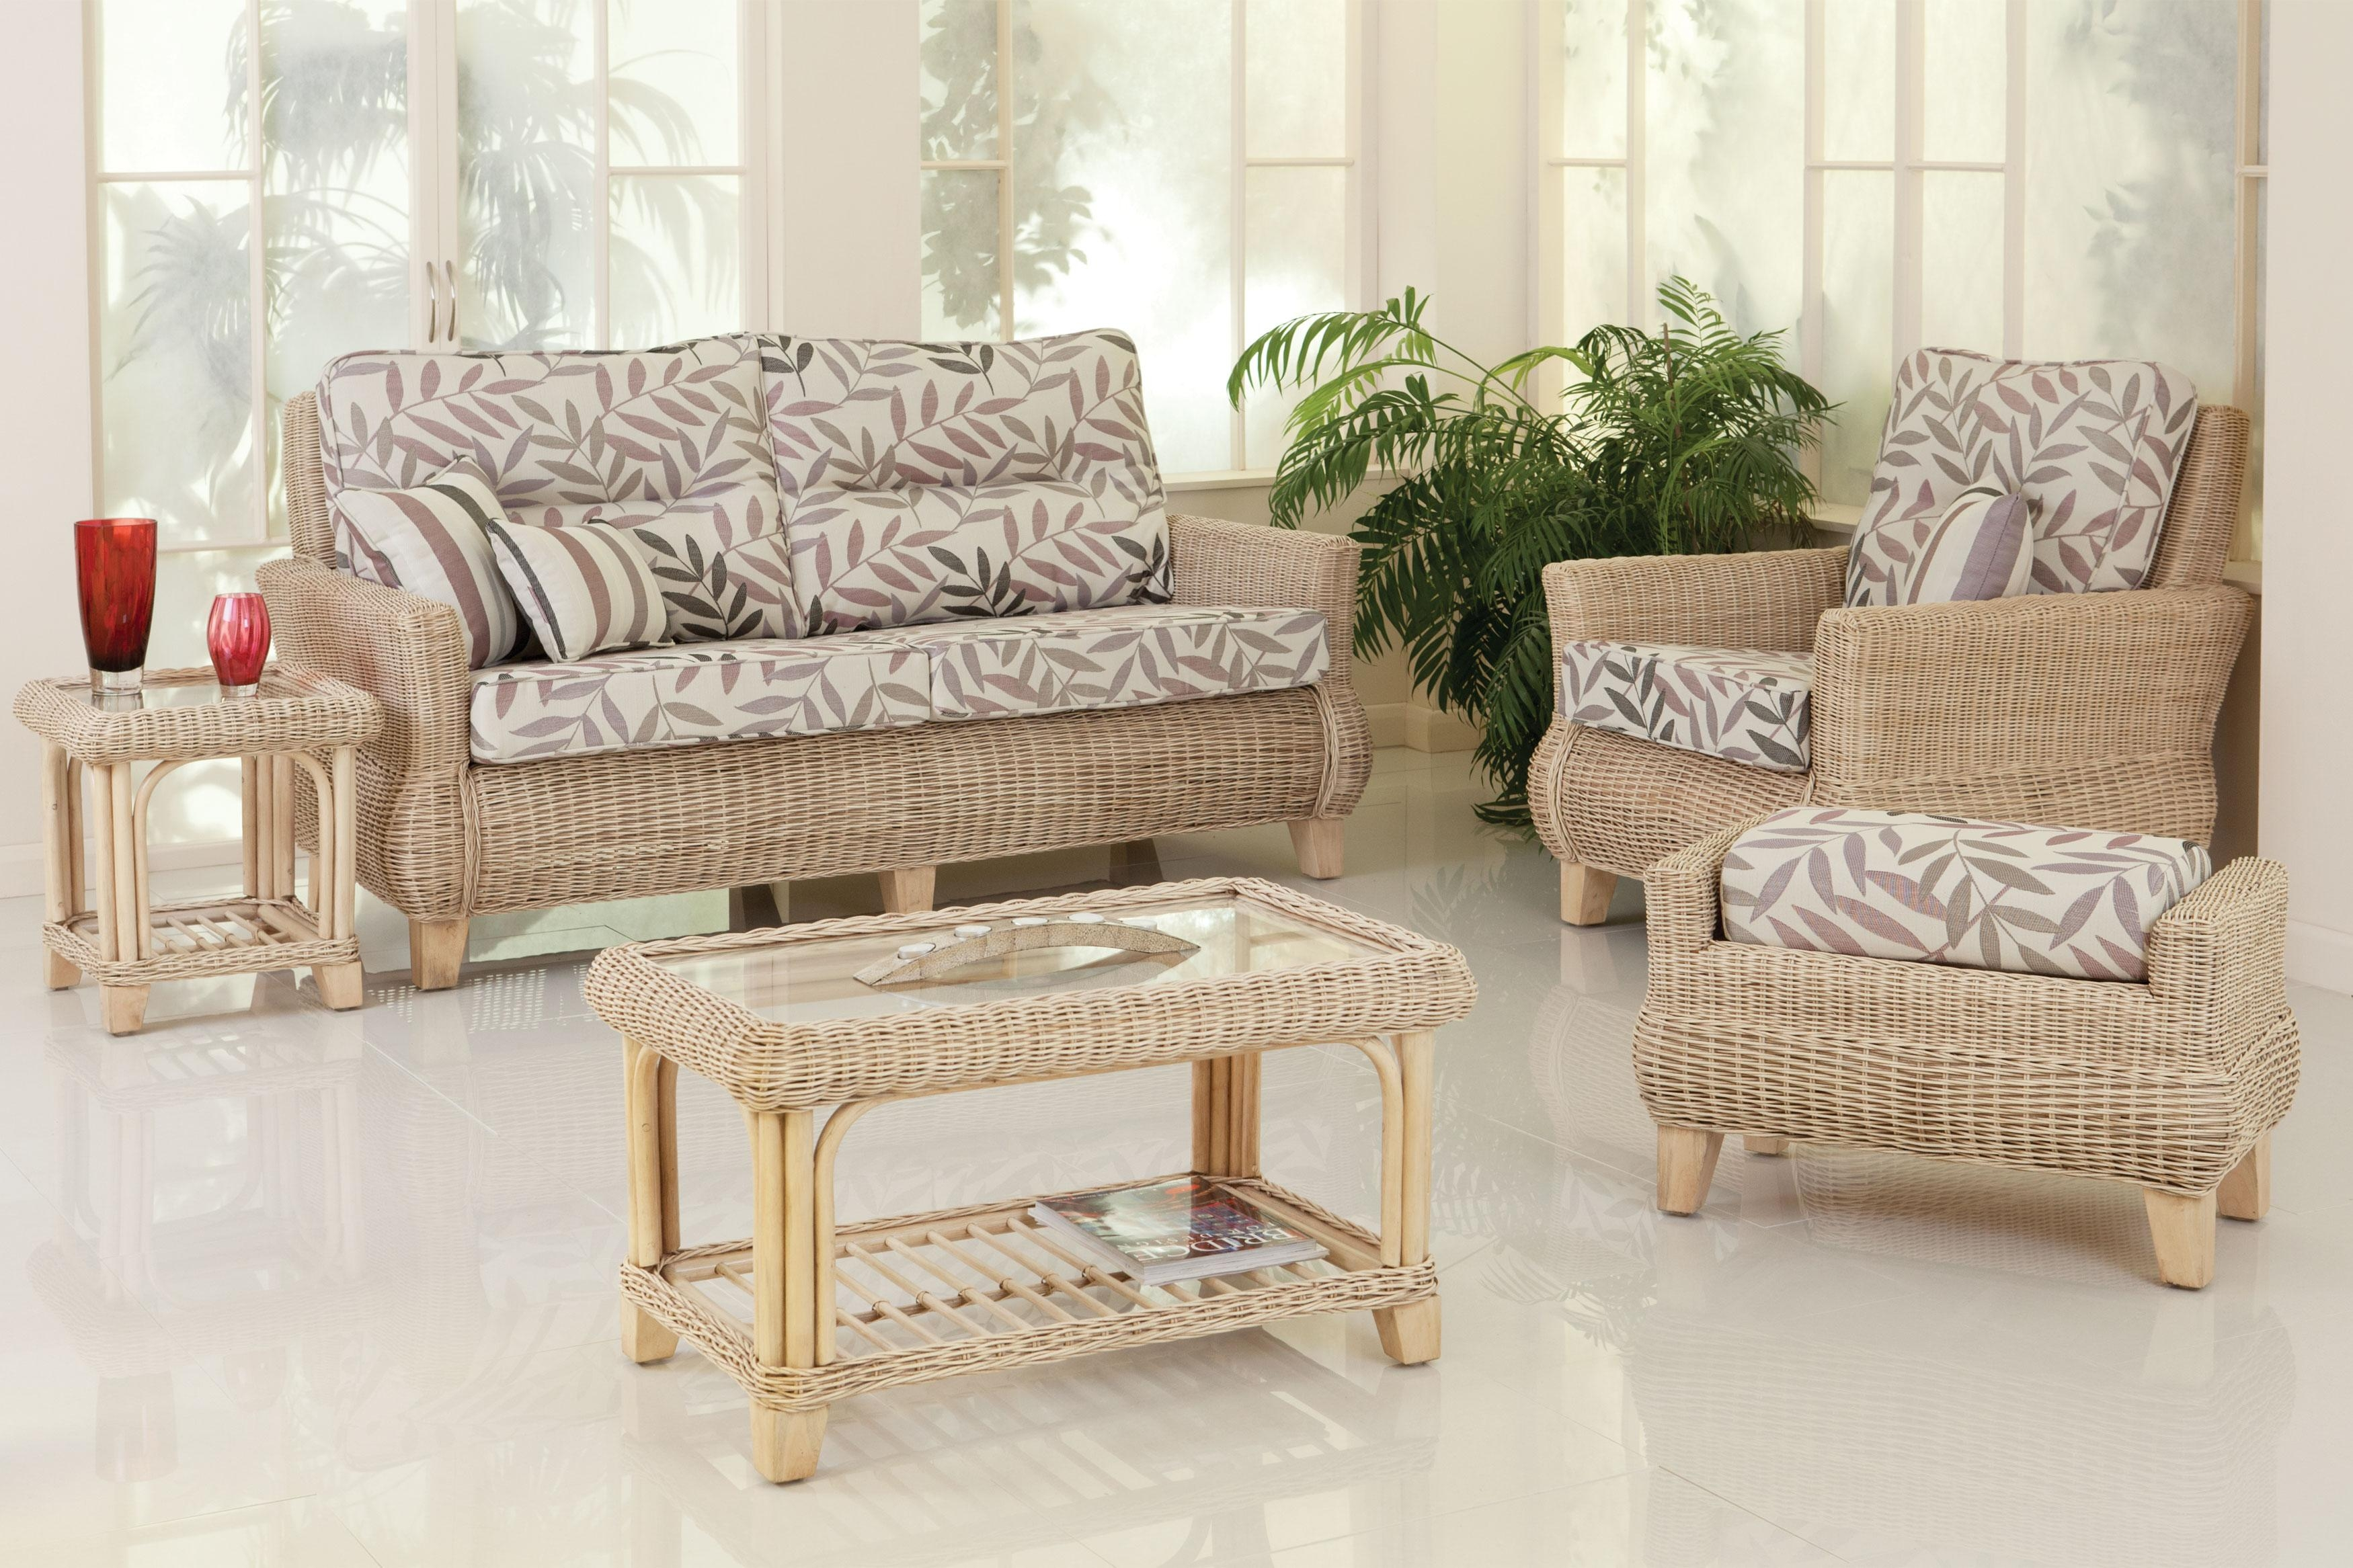 Bamboo Sofa Set | Sofa Gallery | Kengire For Bamboo Sofas (View 12 of 20)